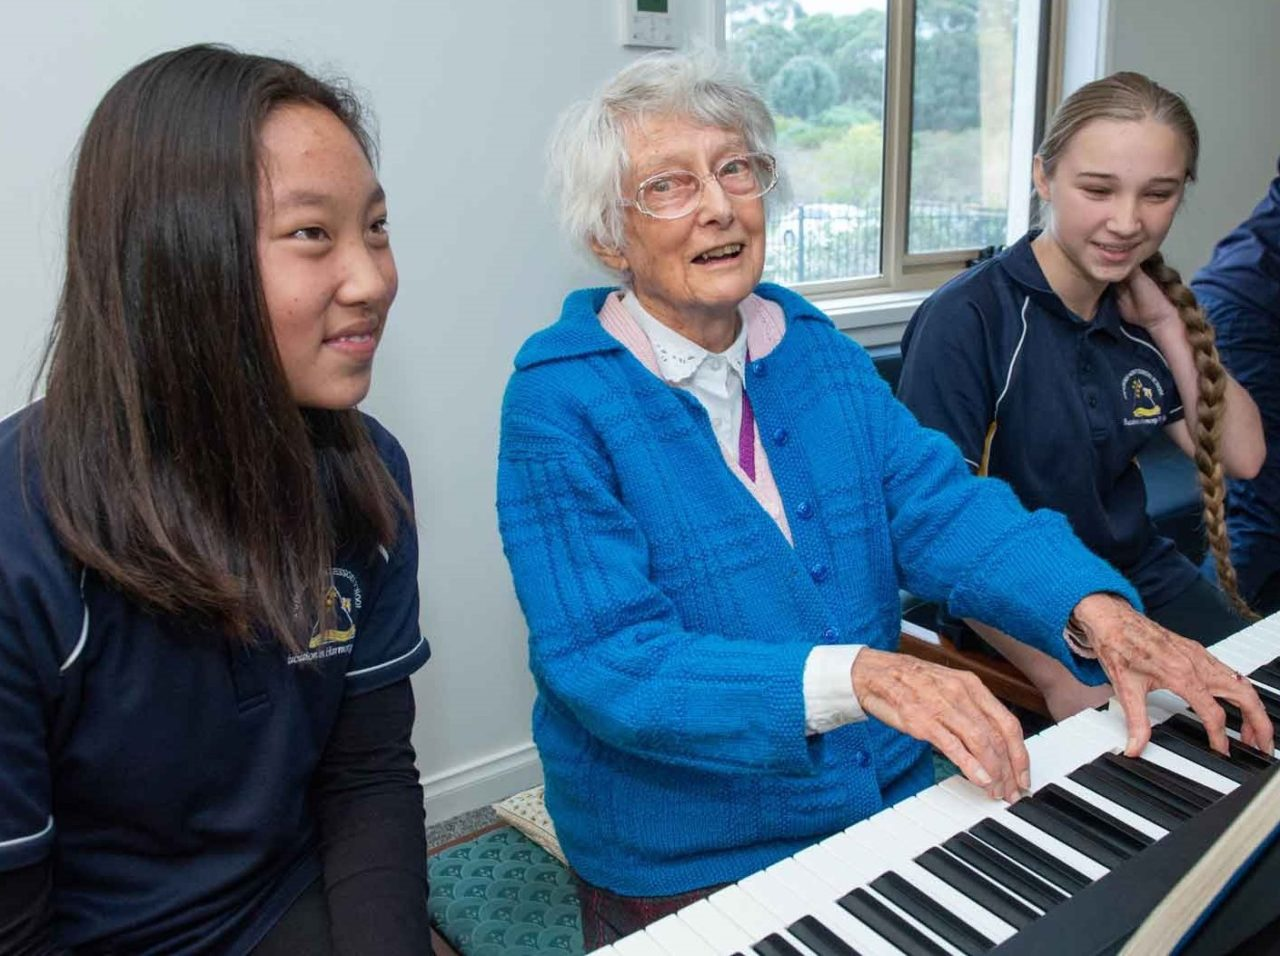 Intergenerational Universities? Australia Looks to Intergenerational Care with Students